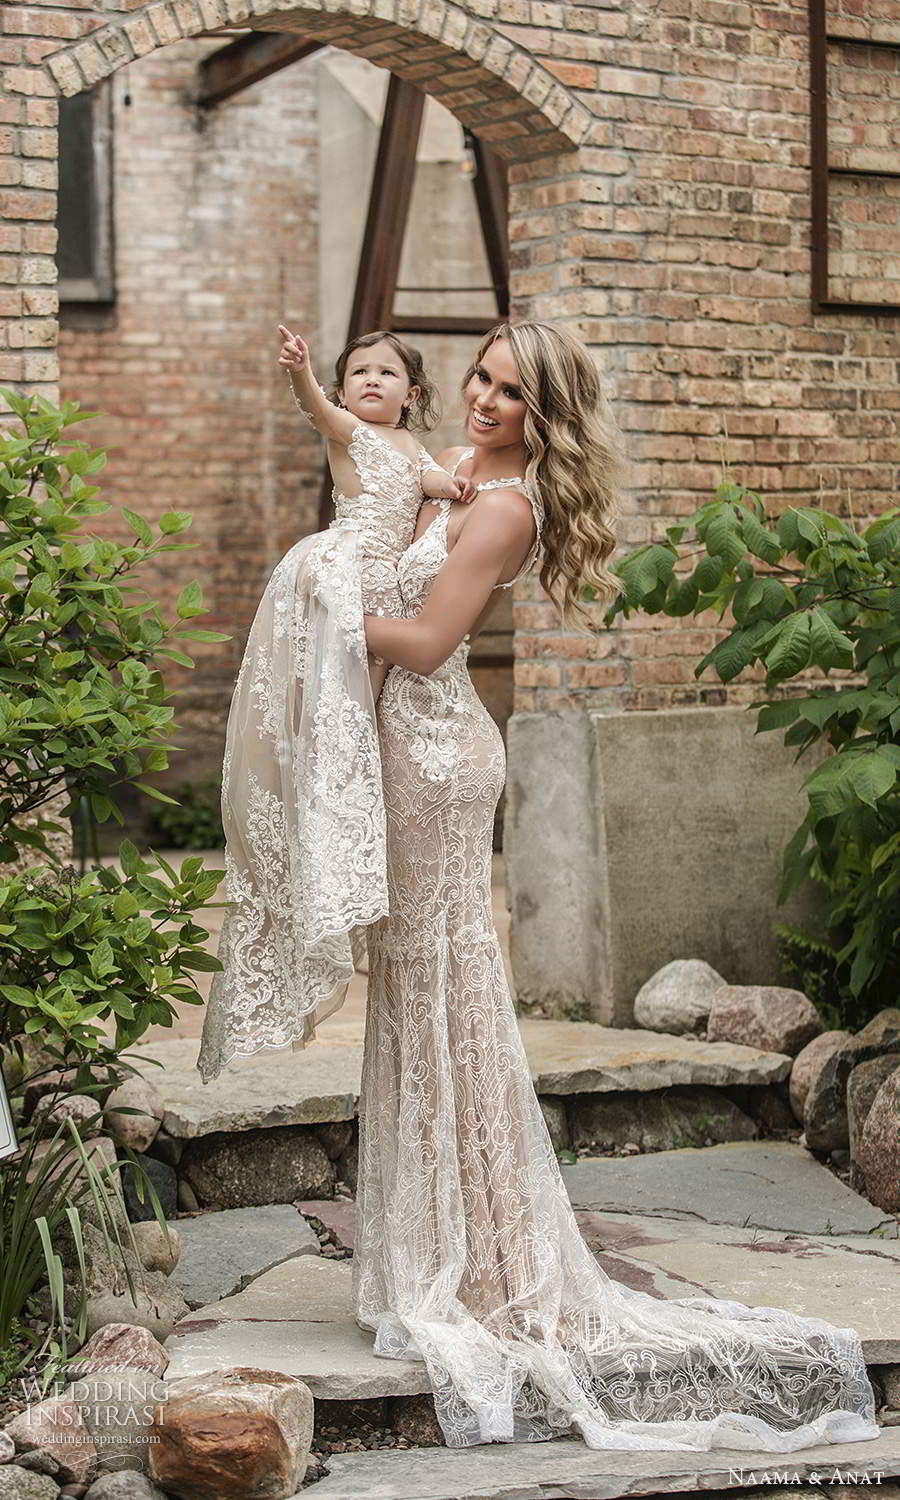 naama and anat 2021 bridal sleeveless halter neckline cutout bodice fully embellished lace sheath wedding dress illusion back chapel train baby (5) sv